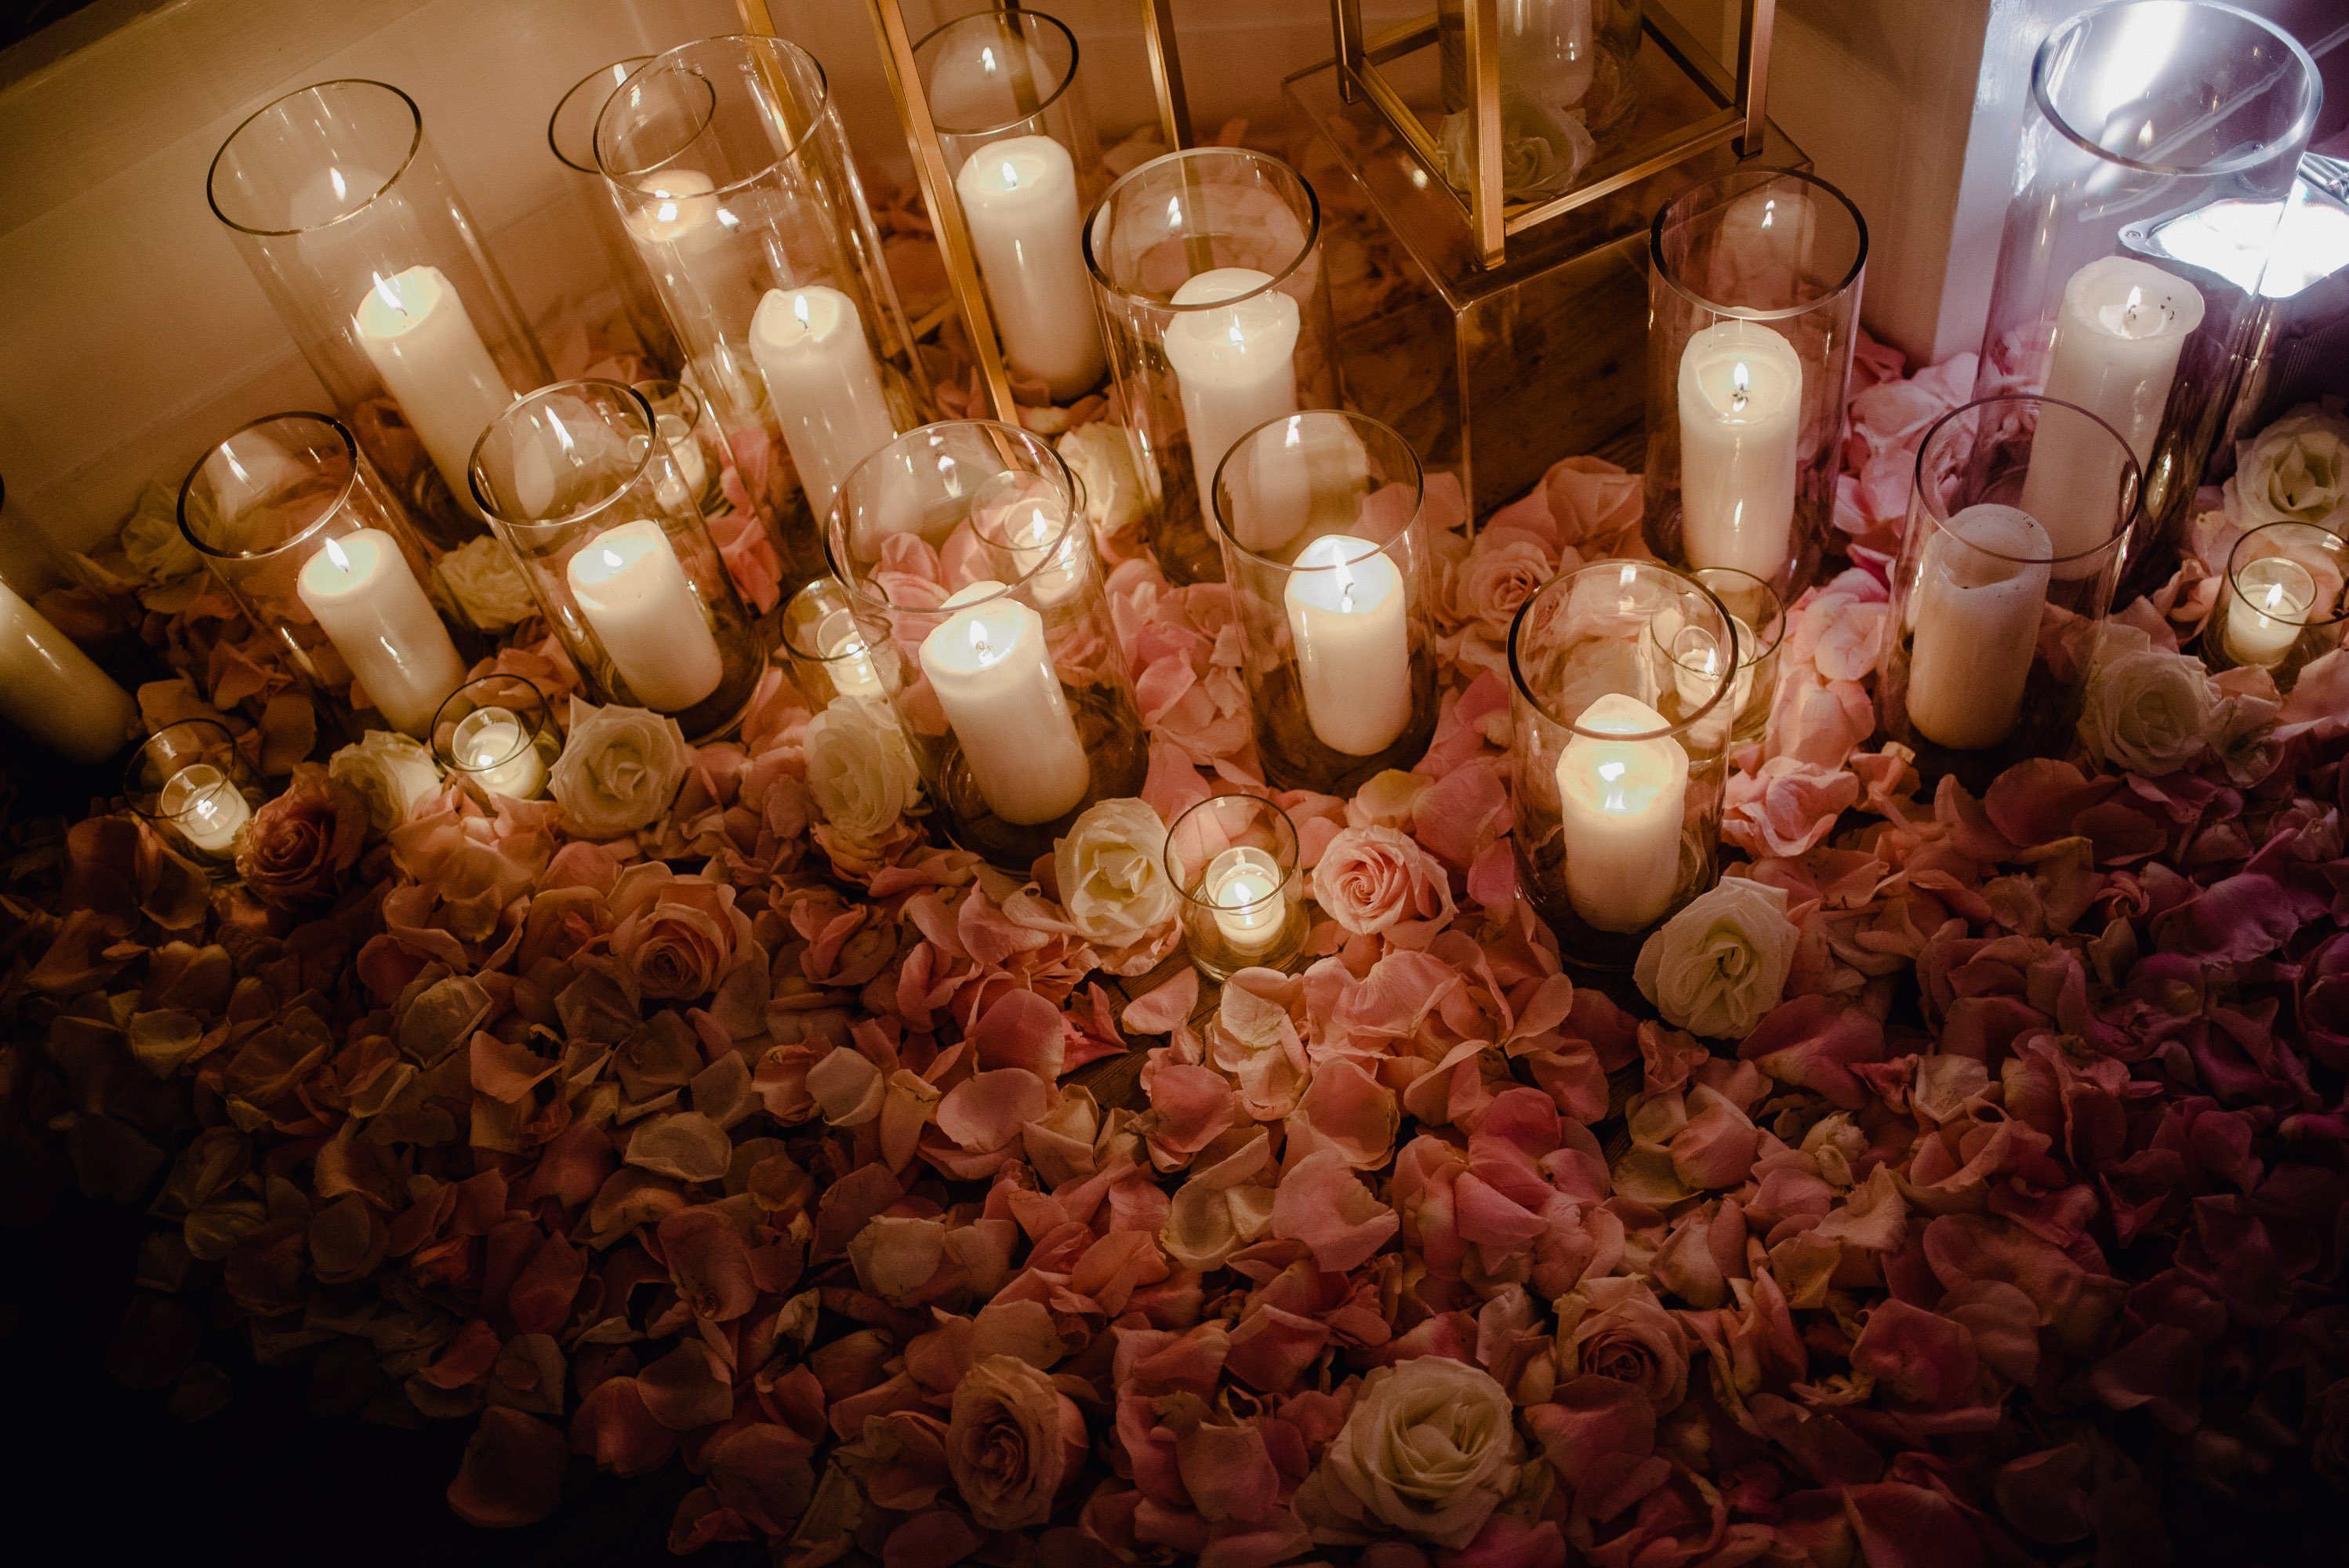 dozens of pink rose petals and white taper candles decorate the floor at the Allan House winter open house